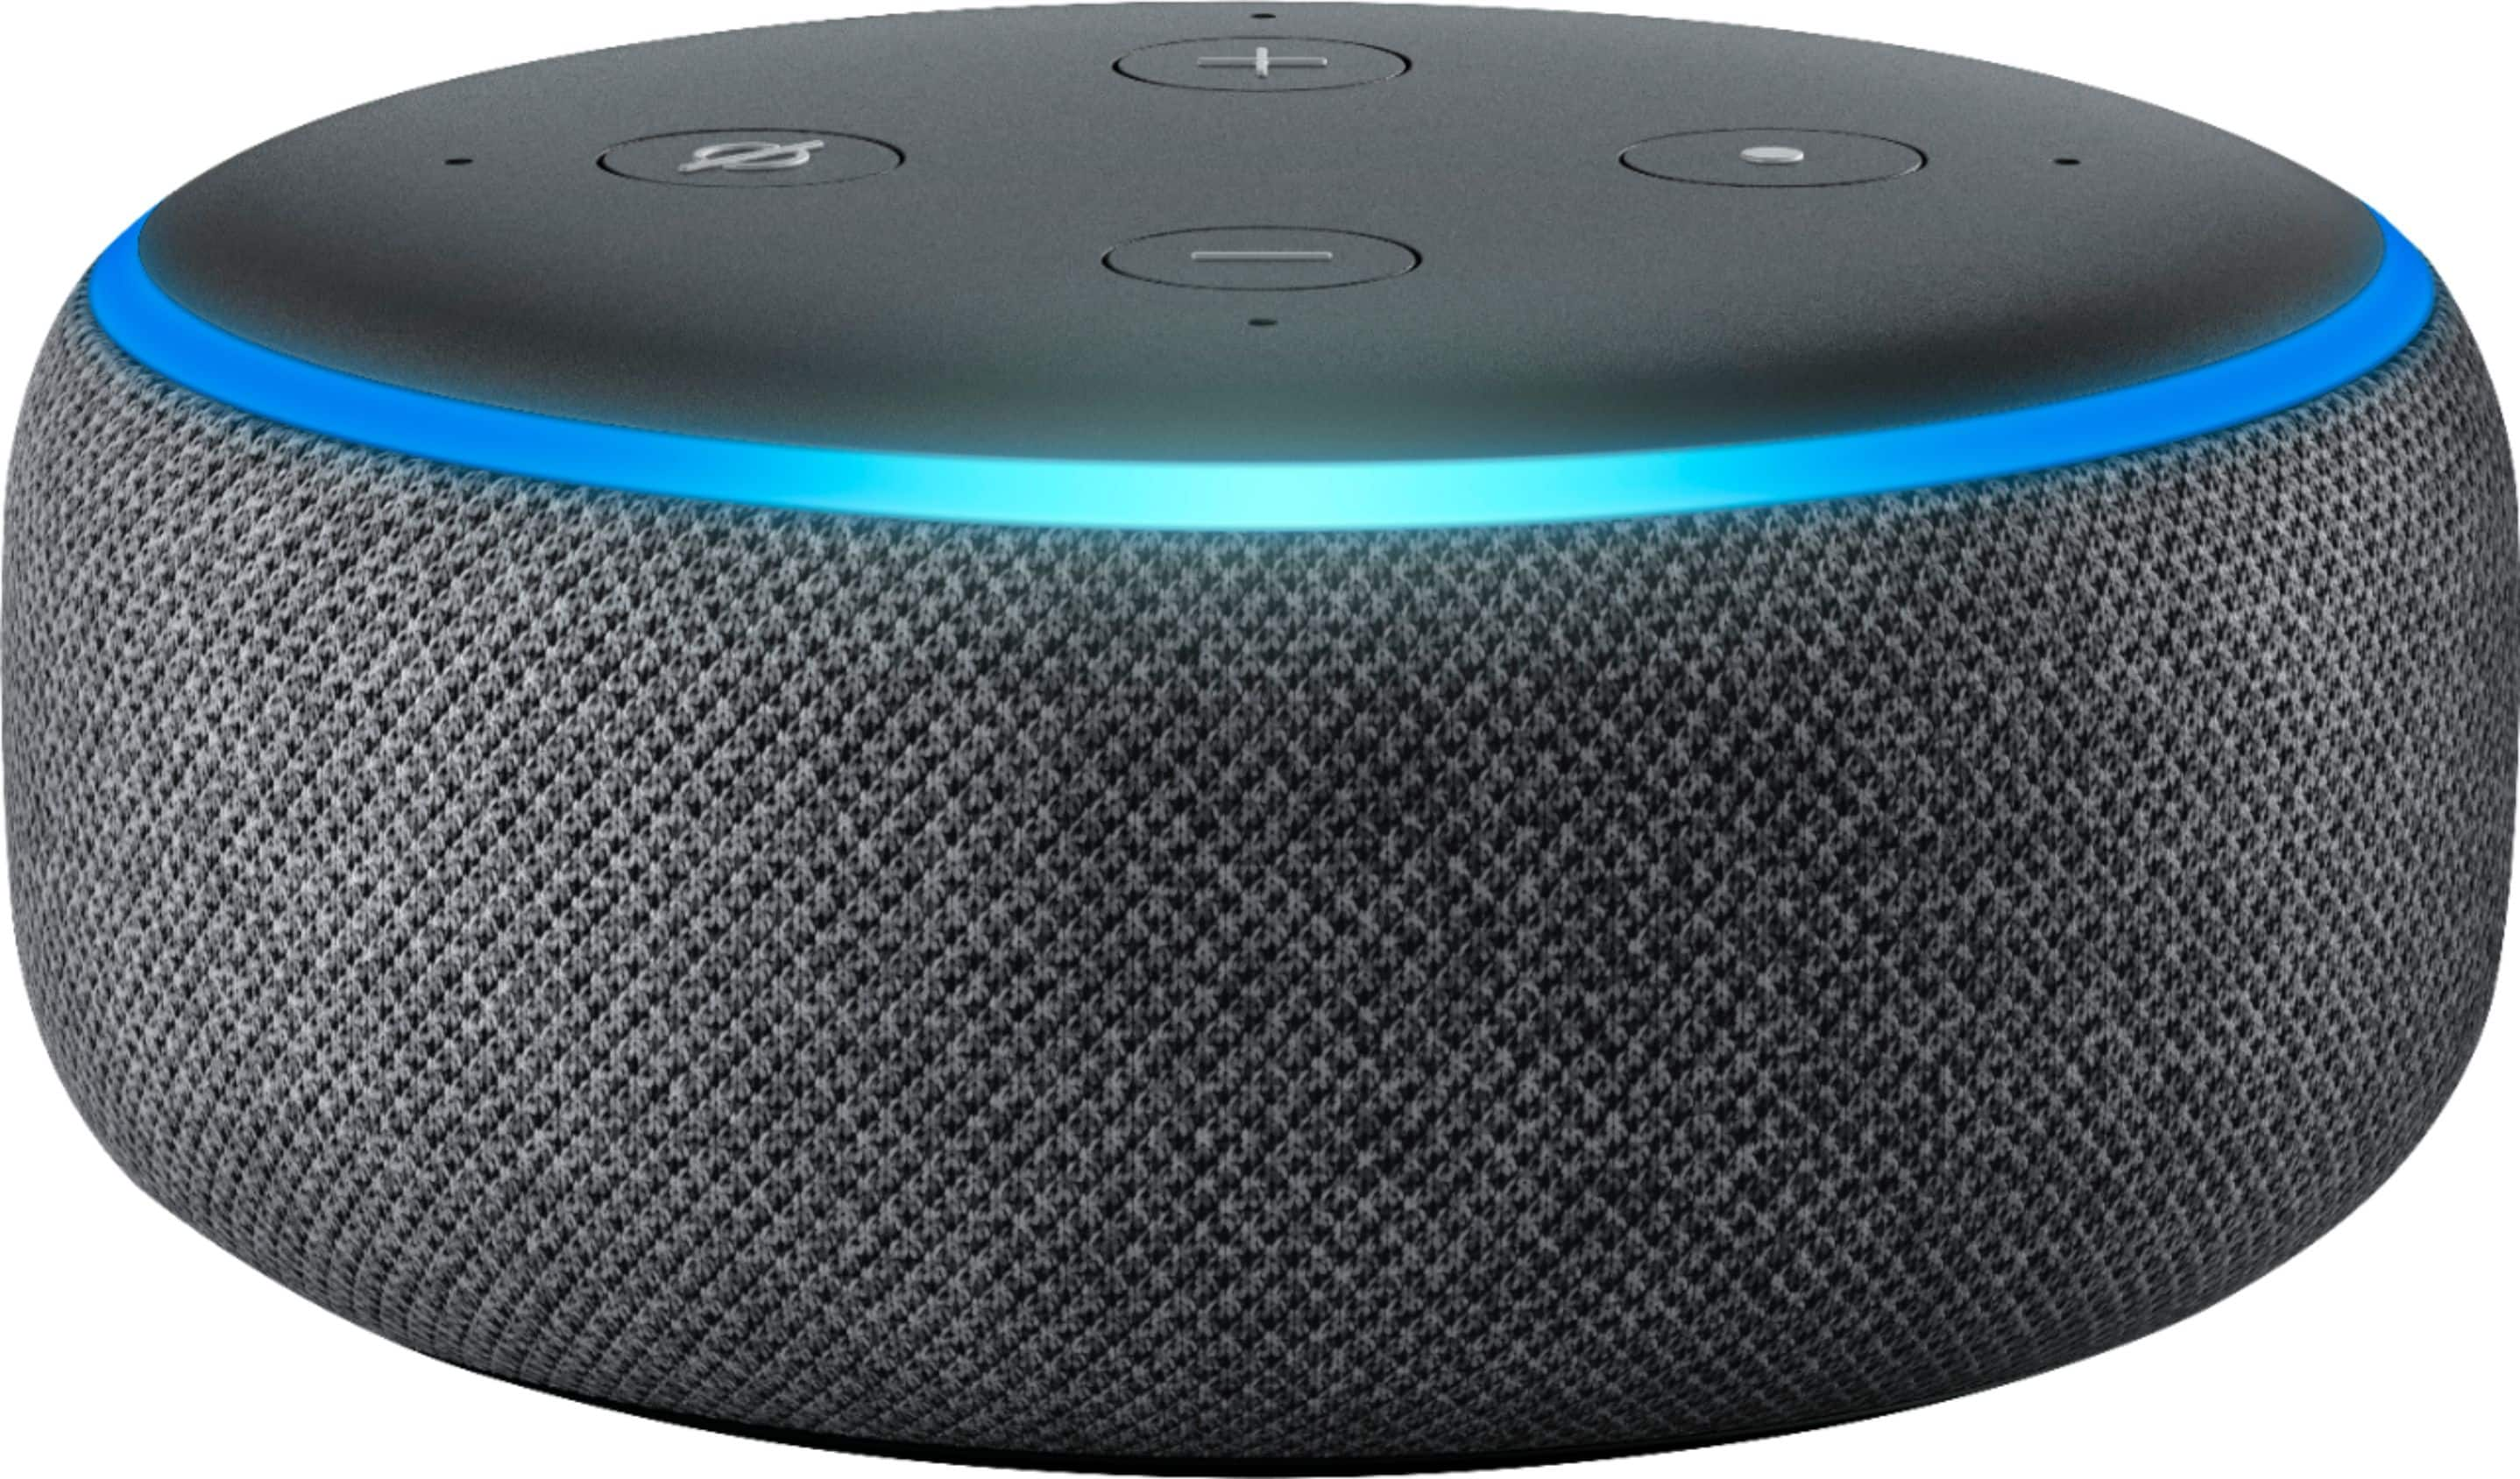 Echo Dot Smart speaker (3rd Gen) + Sengled Soft White A19 Smart Bulb